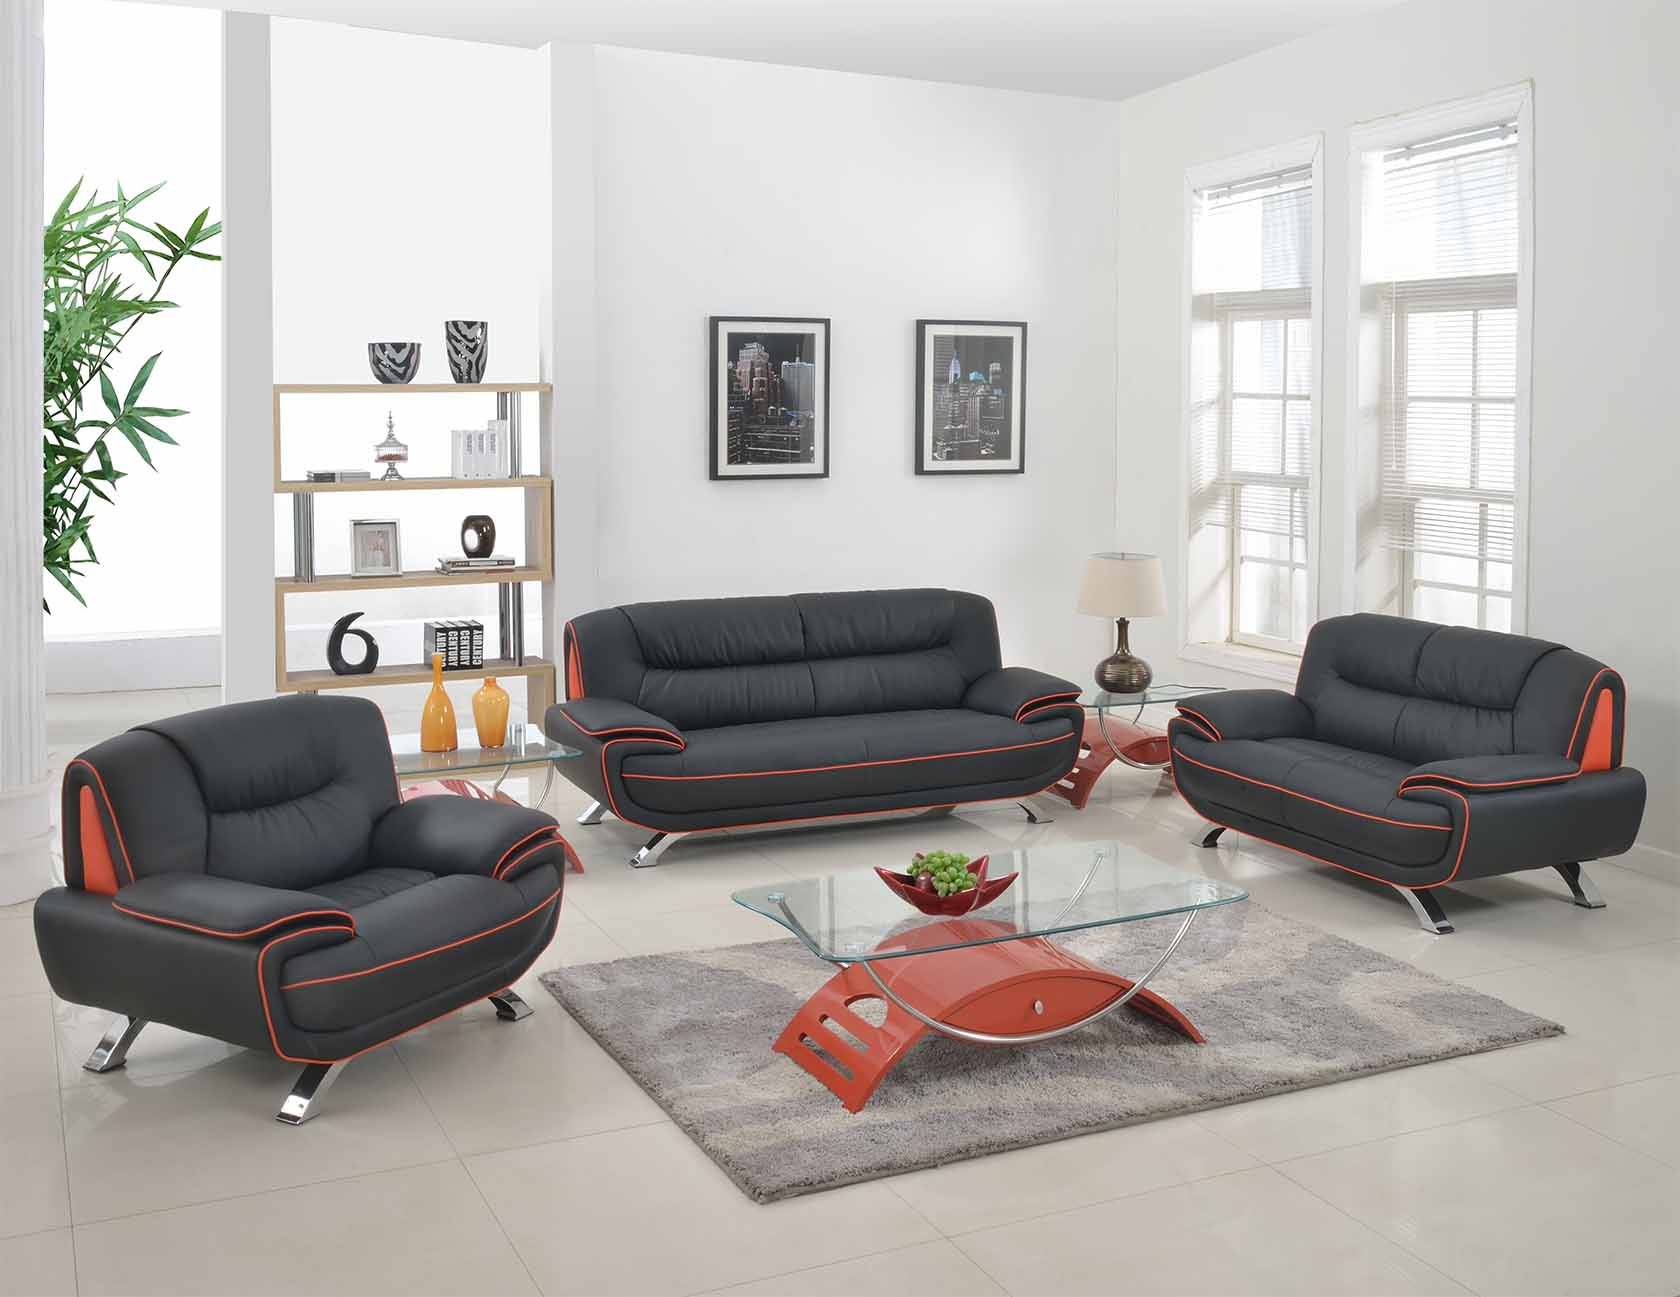 Amalfi Black With Red Orange Leather Living Room Las Vegas Furniture Store